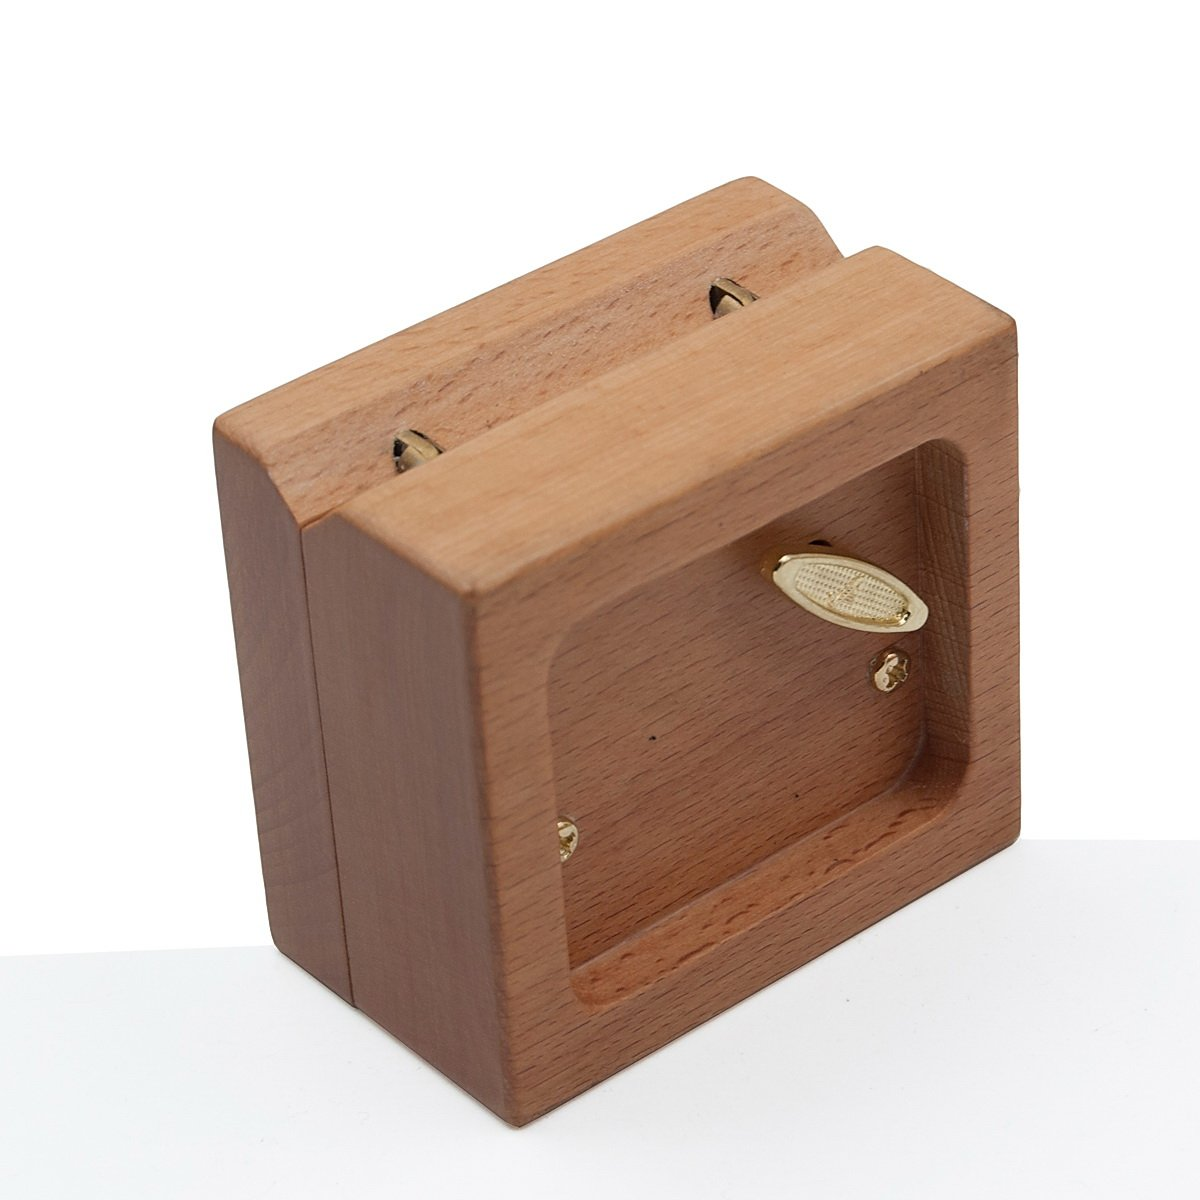 Mini 18 note wind-up Beech Wooden Music Box Tune of You Are My Sunshine For Christmas/Birthday/Valentine's day by Wingostore (Image #2)